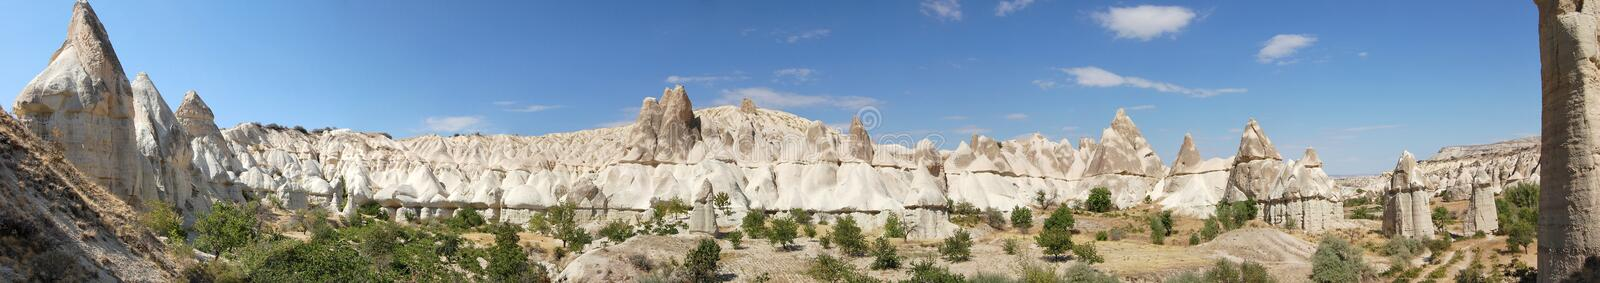 Love Valley in Cappadocia panoramic stock photos